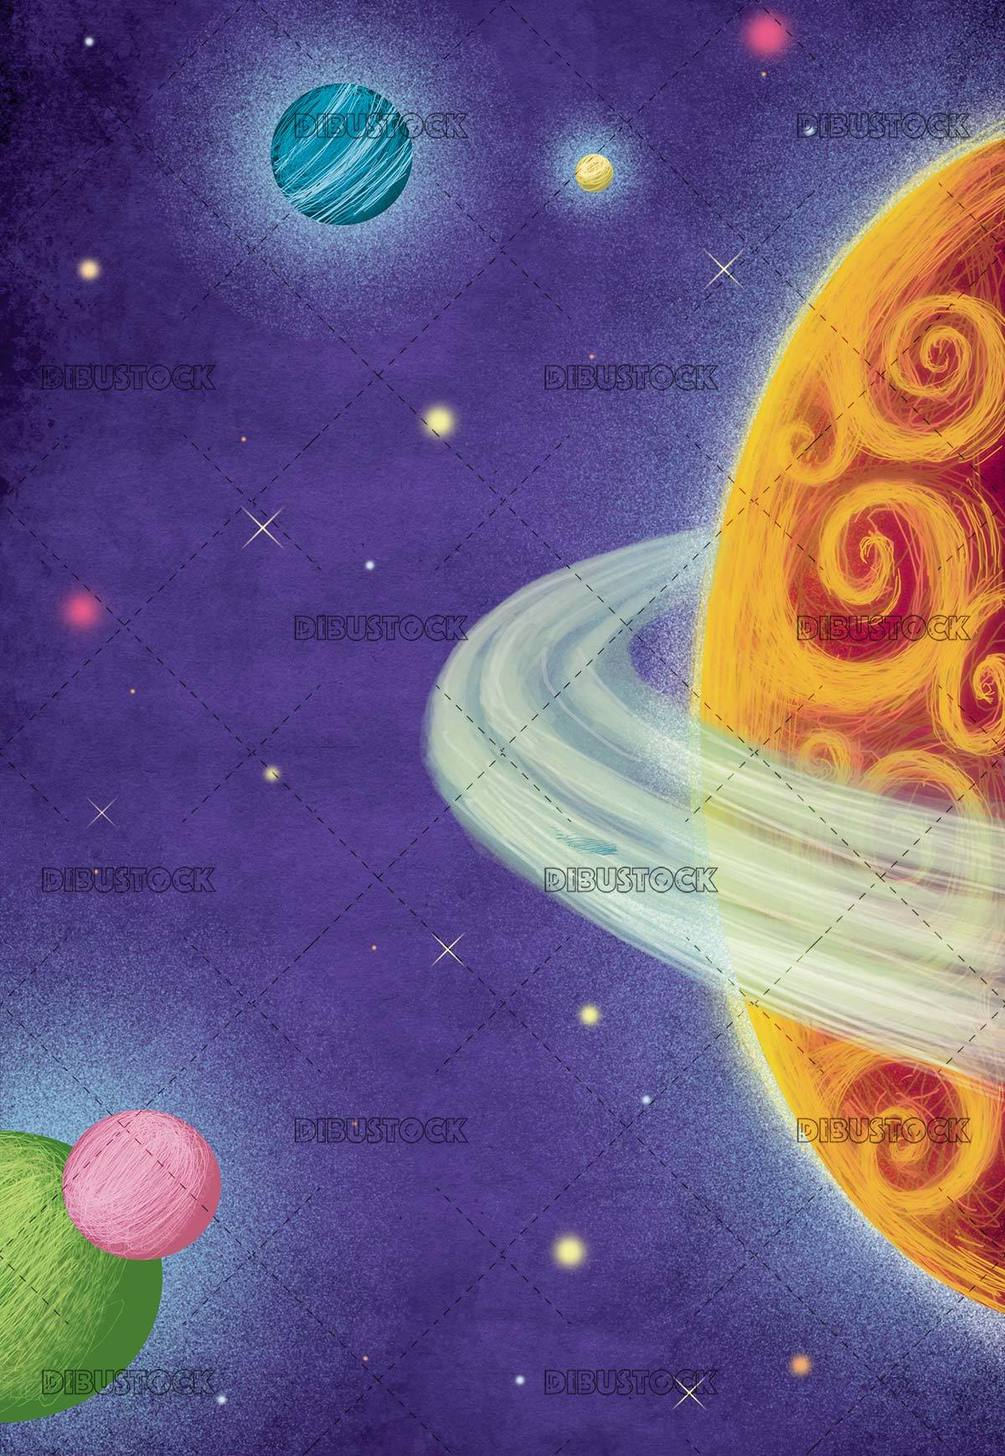 space background with planets